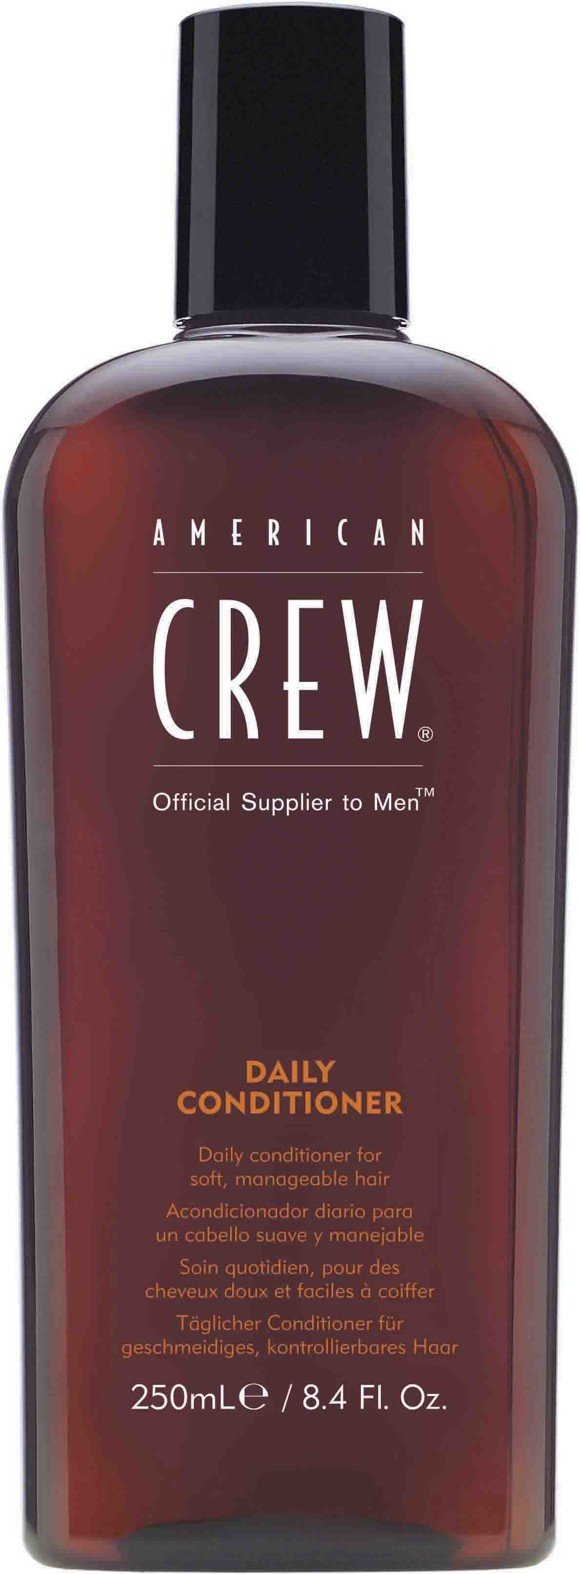 American Crew - Daily Conditioner 250 ml.